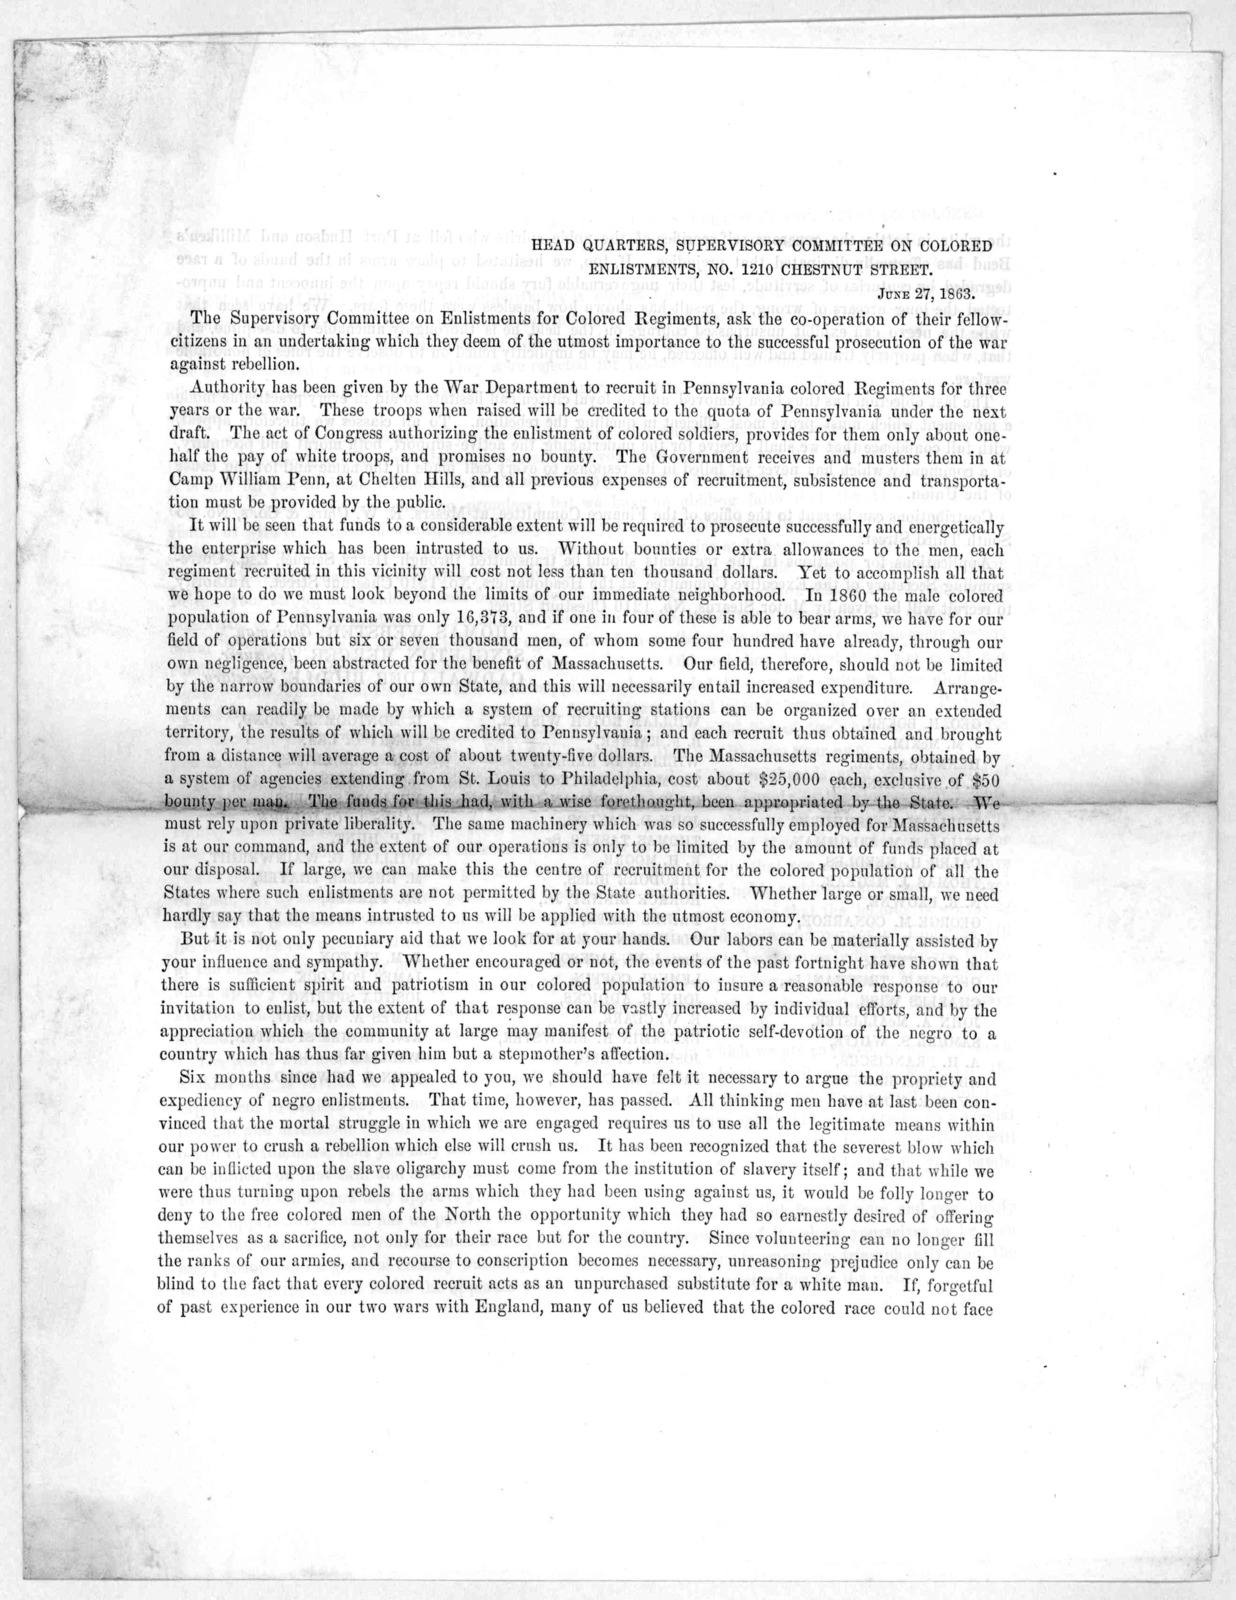 The Supervisory committee of enlistments for colored regiments, asks the co-operation of their fellow-citizens in an undertaking which they deem of the utmost importance to the successful prosecution of the war against rebellion ... [Philadelphi